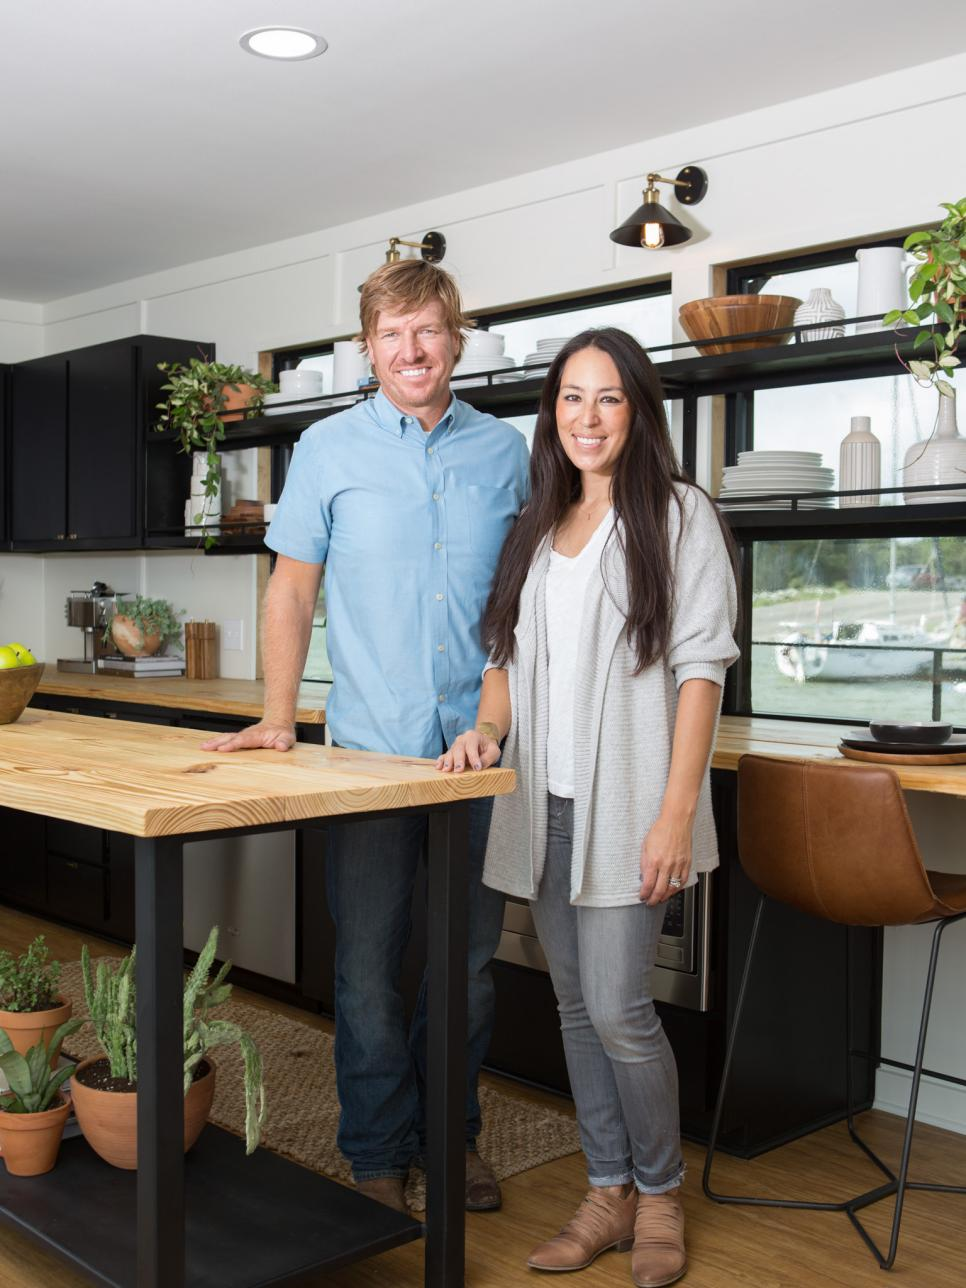 HGTV's Fixer Upper With Chip And